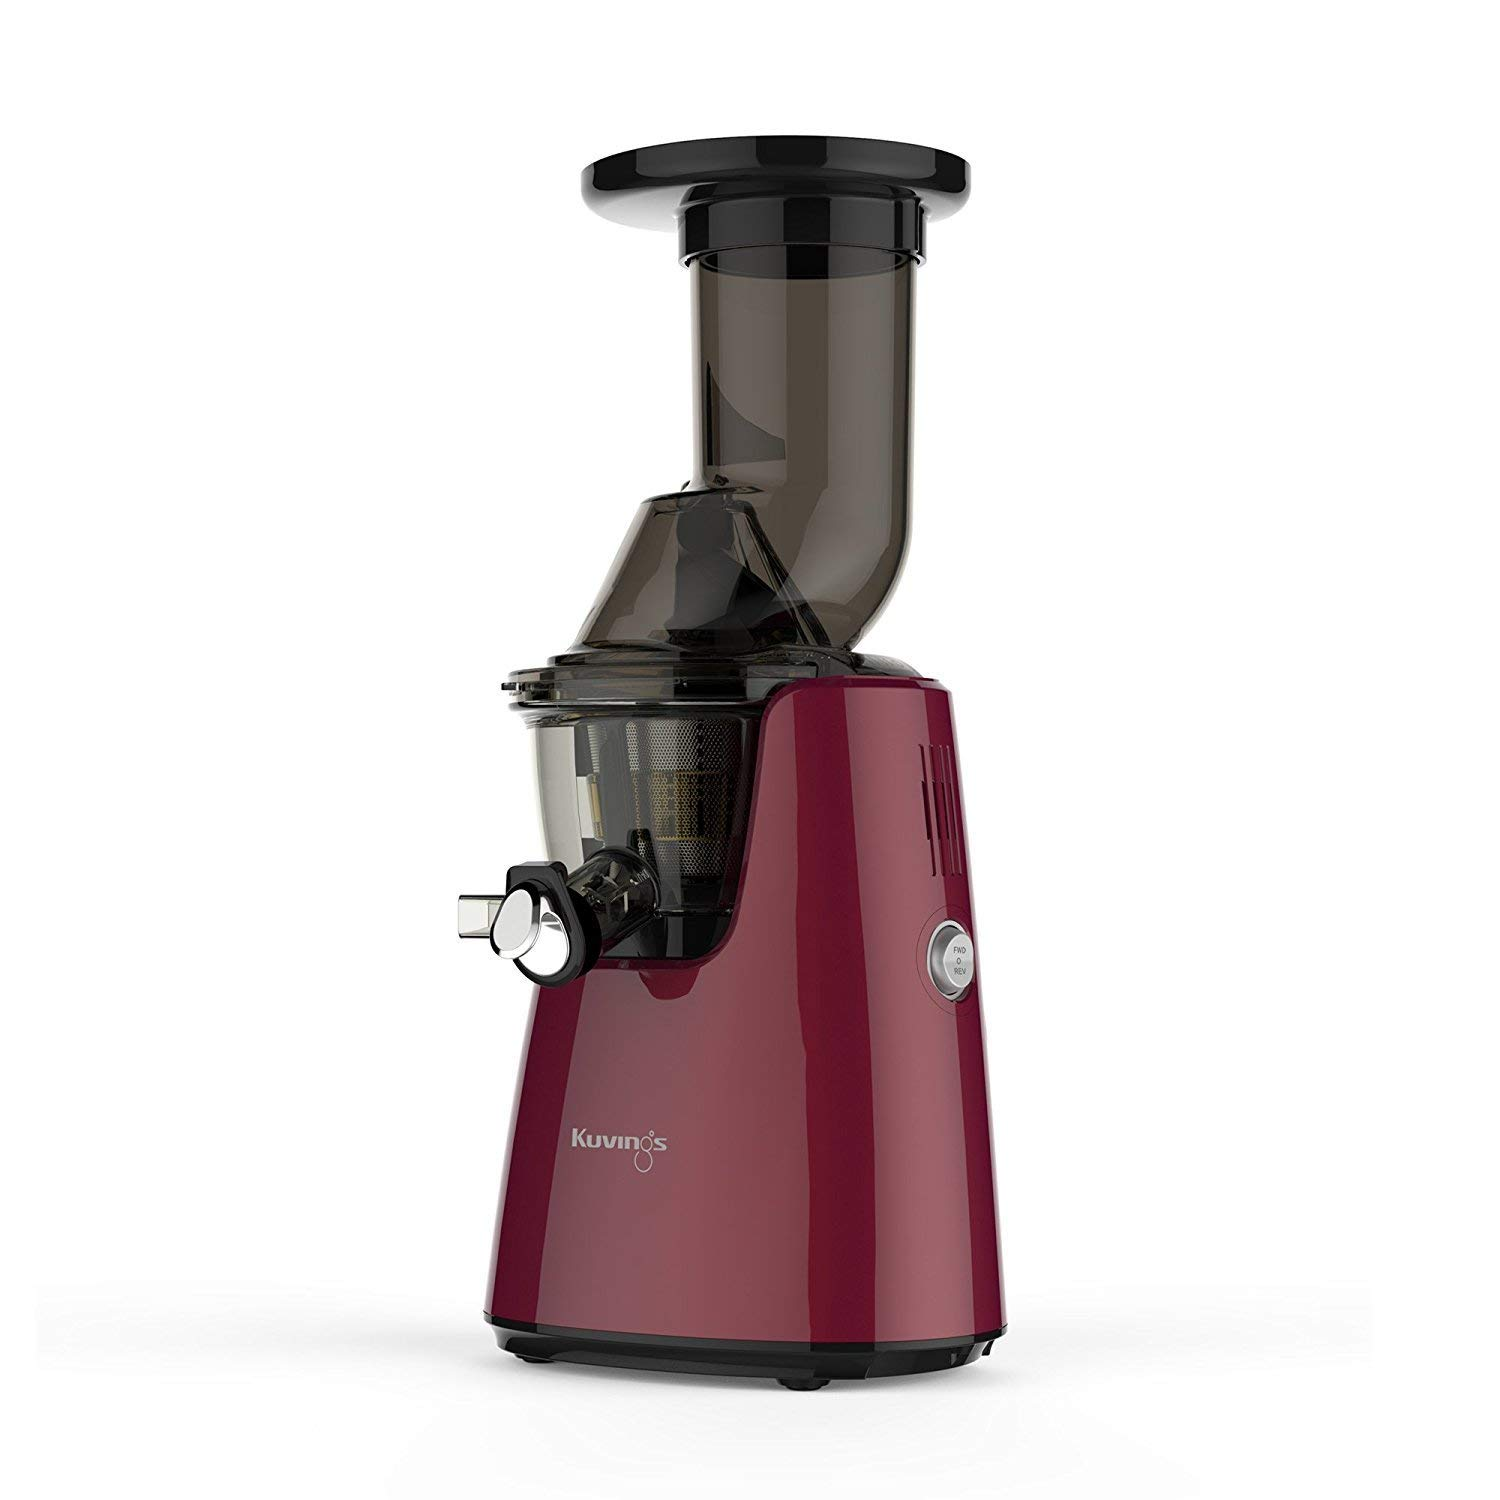 Kuvings Whole Slow Juicer C7000P - Higher Nutrients and Vitamins, BPA-Free Components, Easy to Clean, Ultra Efficient 240W, 60RPMs, Includes Smoothie and Blank Strainer-Red